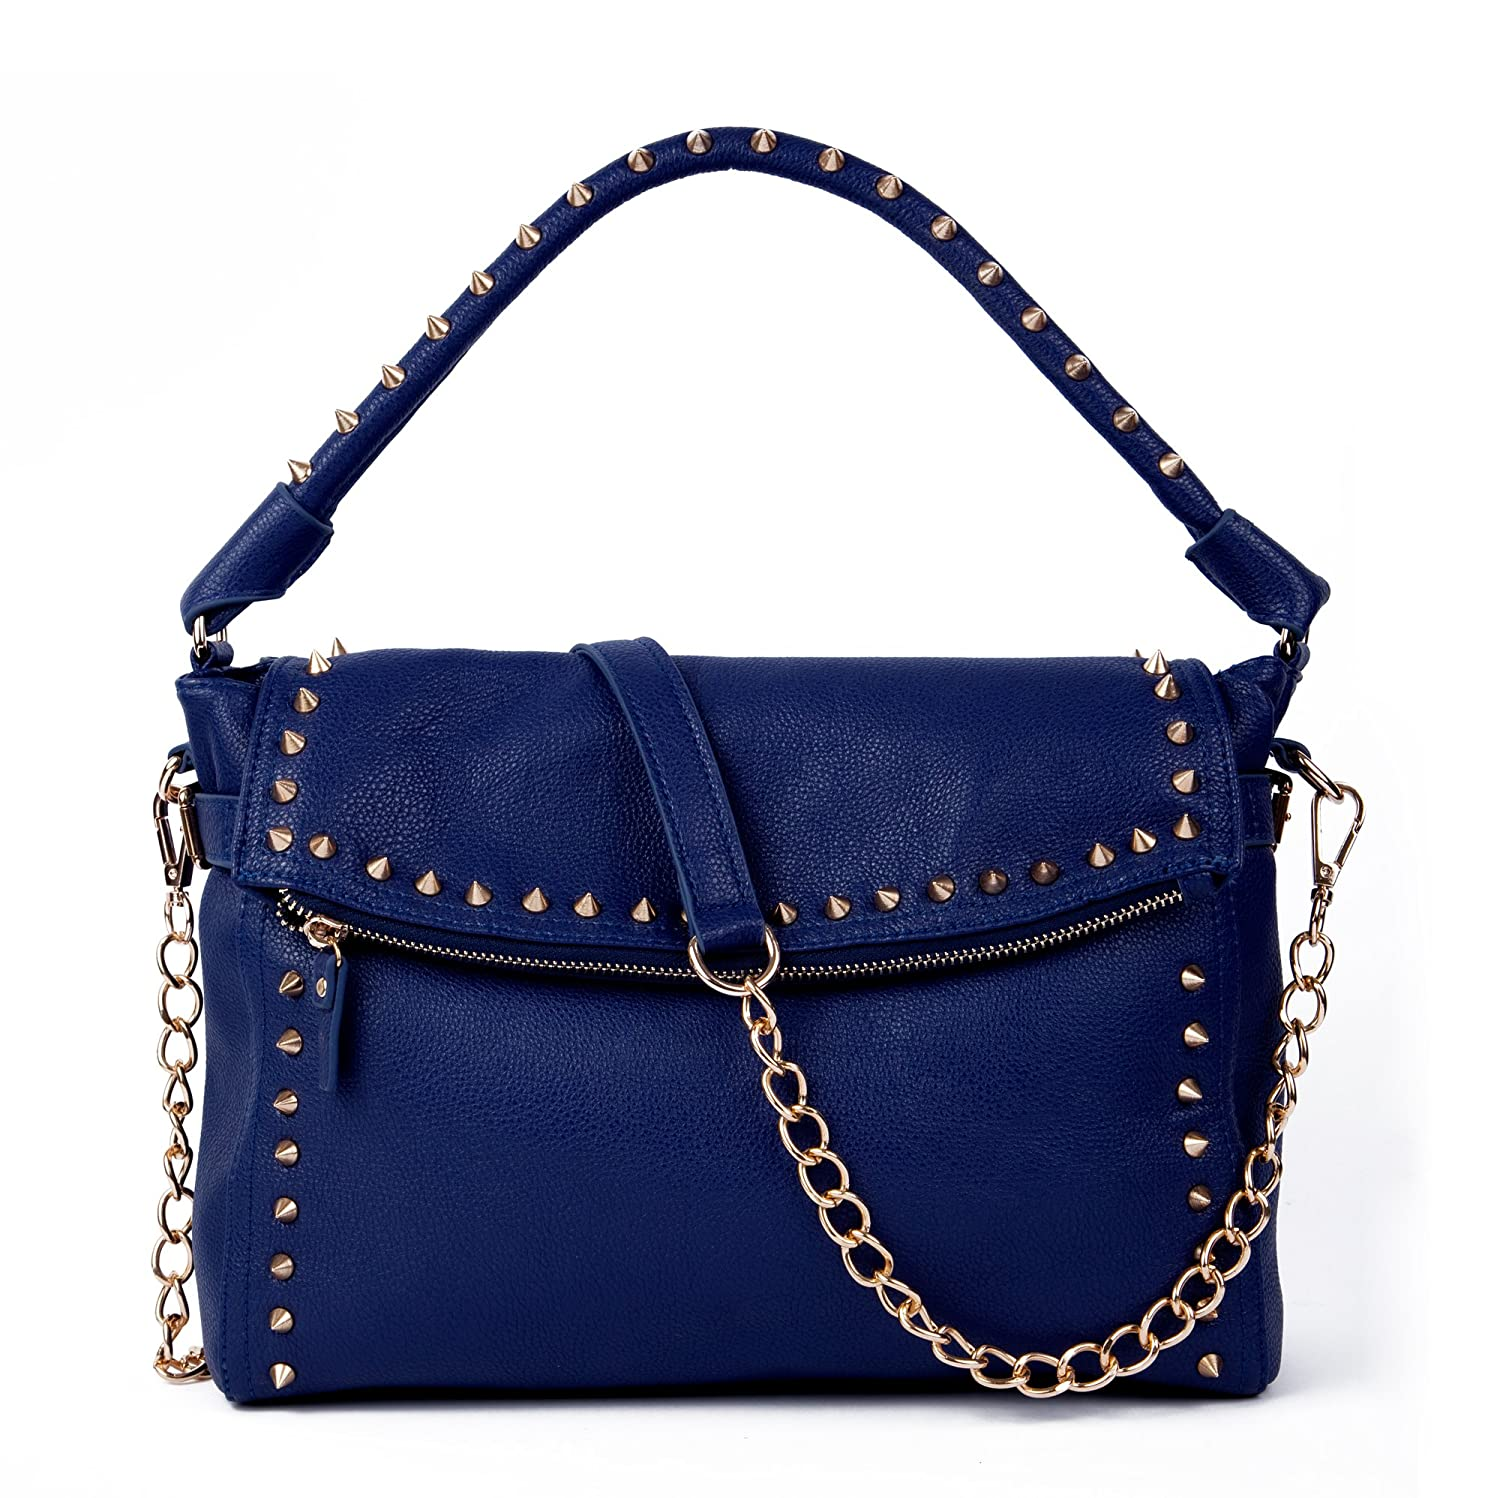 ddbe4619e5c2 Stacey Studded Shoulder Bag - Midnight Blue - Over the Shoulder Bags - Blue  Handbags - Trendy Bags  Handbags  Amazon.com